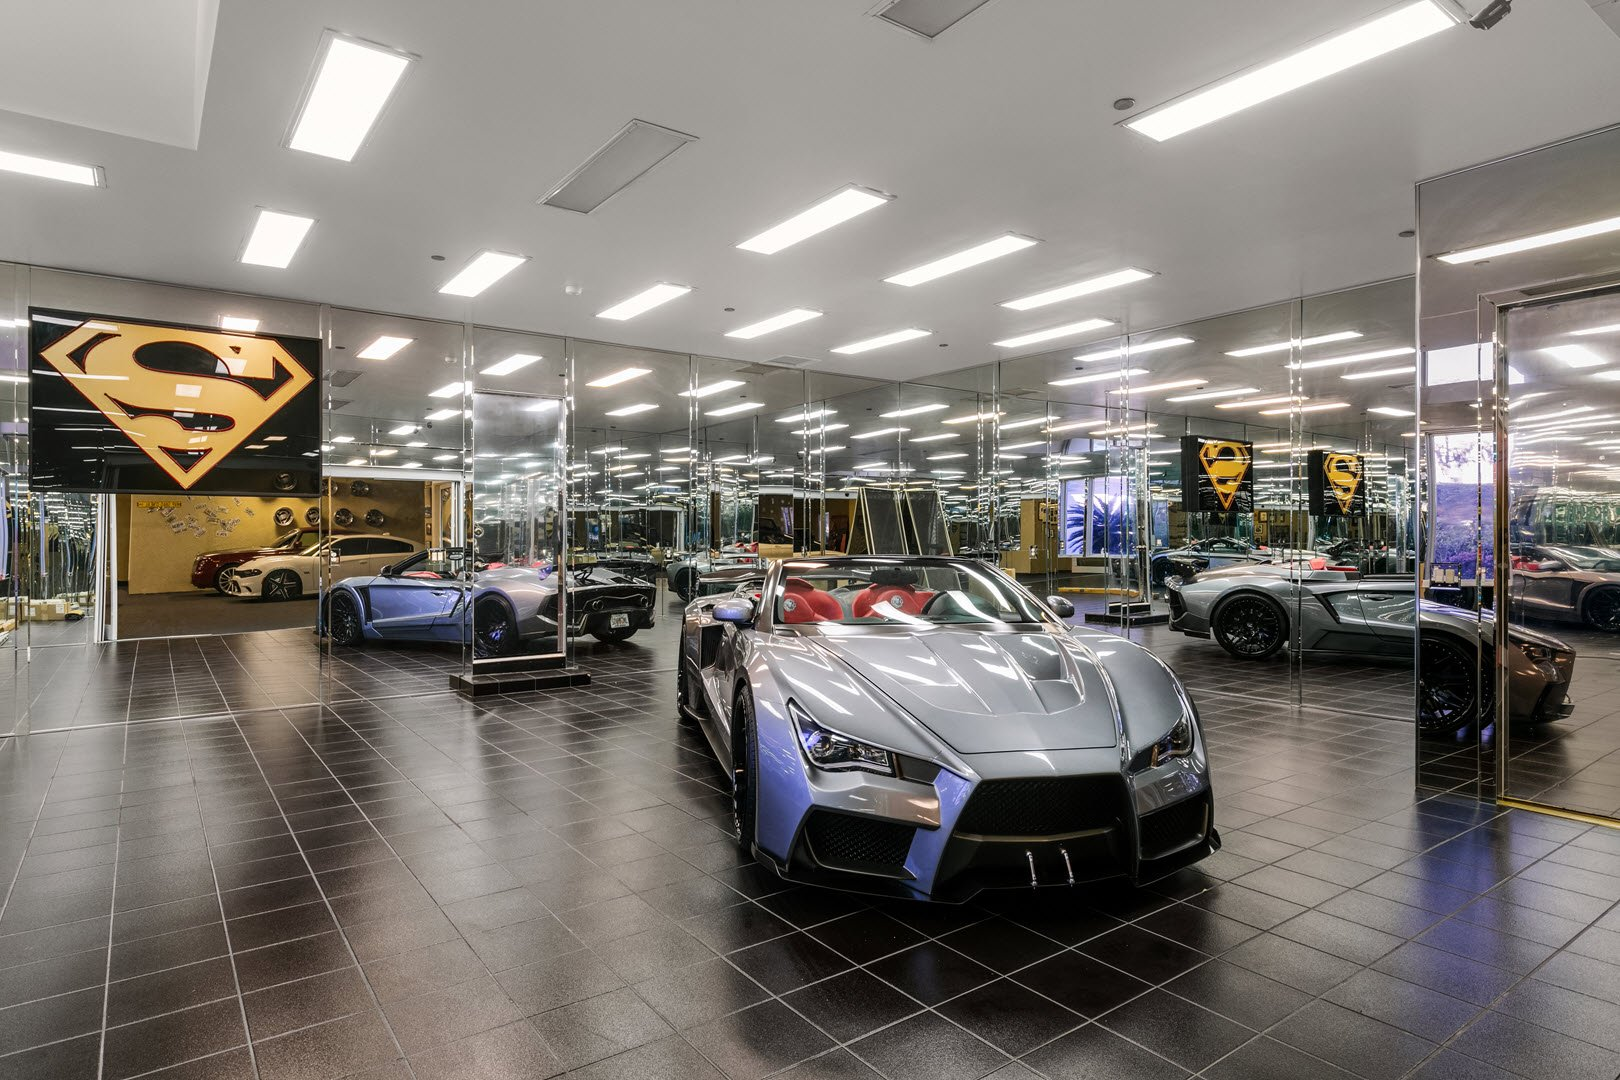 Shaquille O'Neal Florida Mansion -Showroom Car Garage